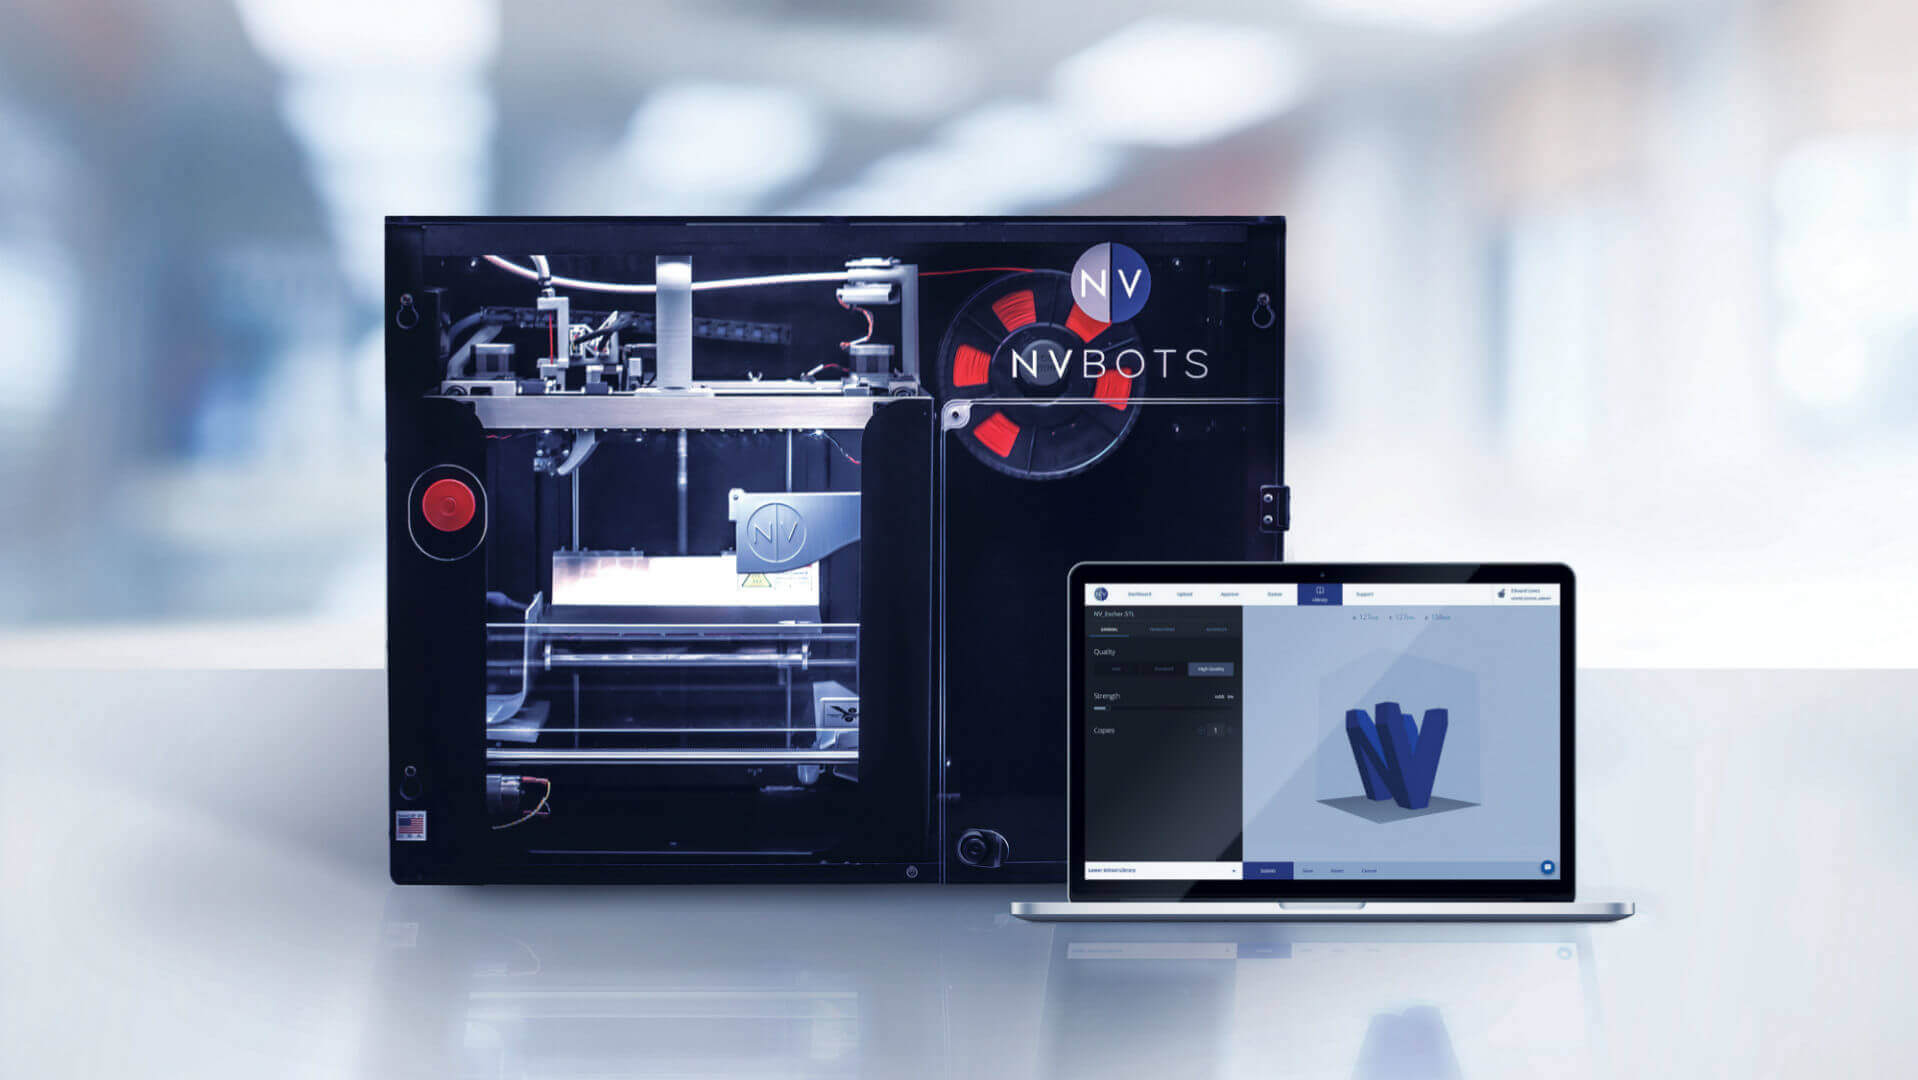 NVBots 3D Printer has Project Queuing and Auto Part Removal | All3DP